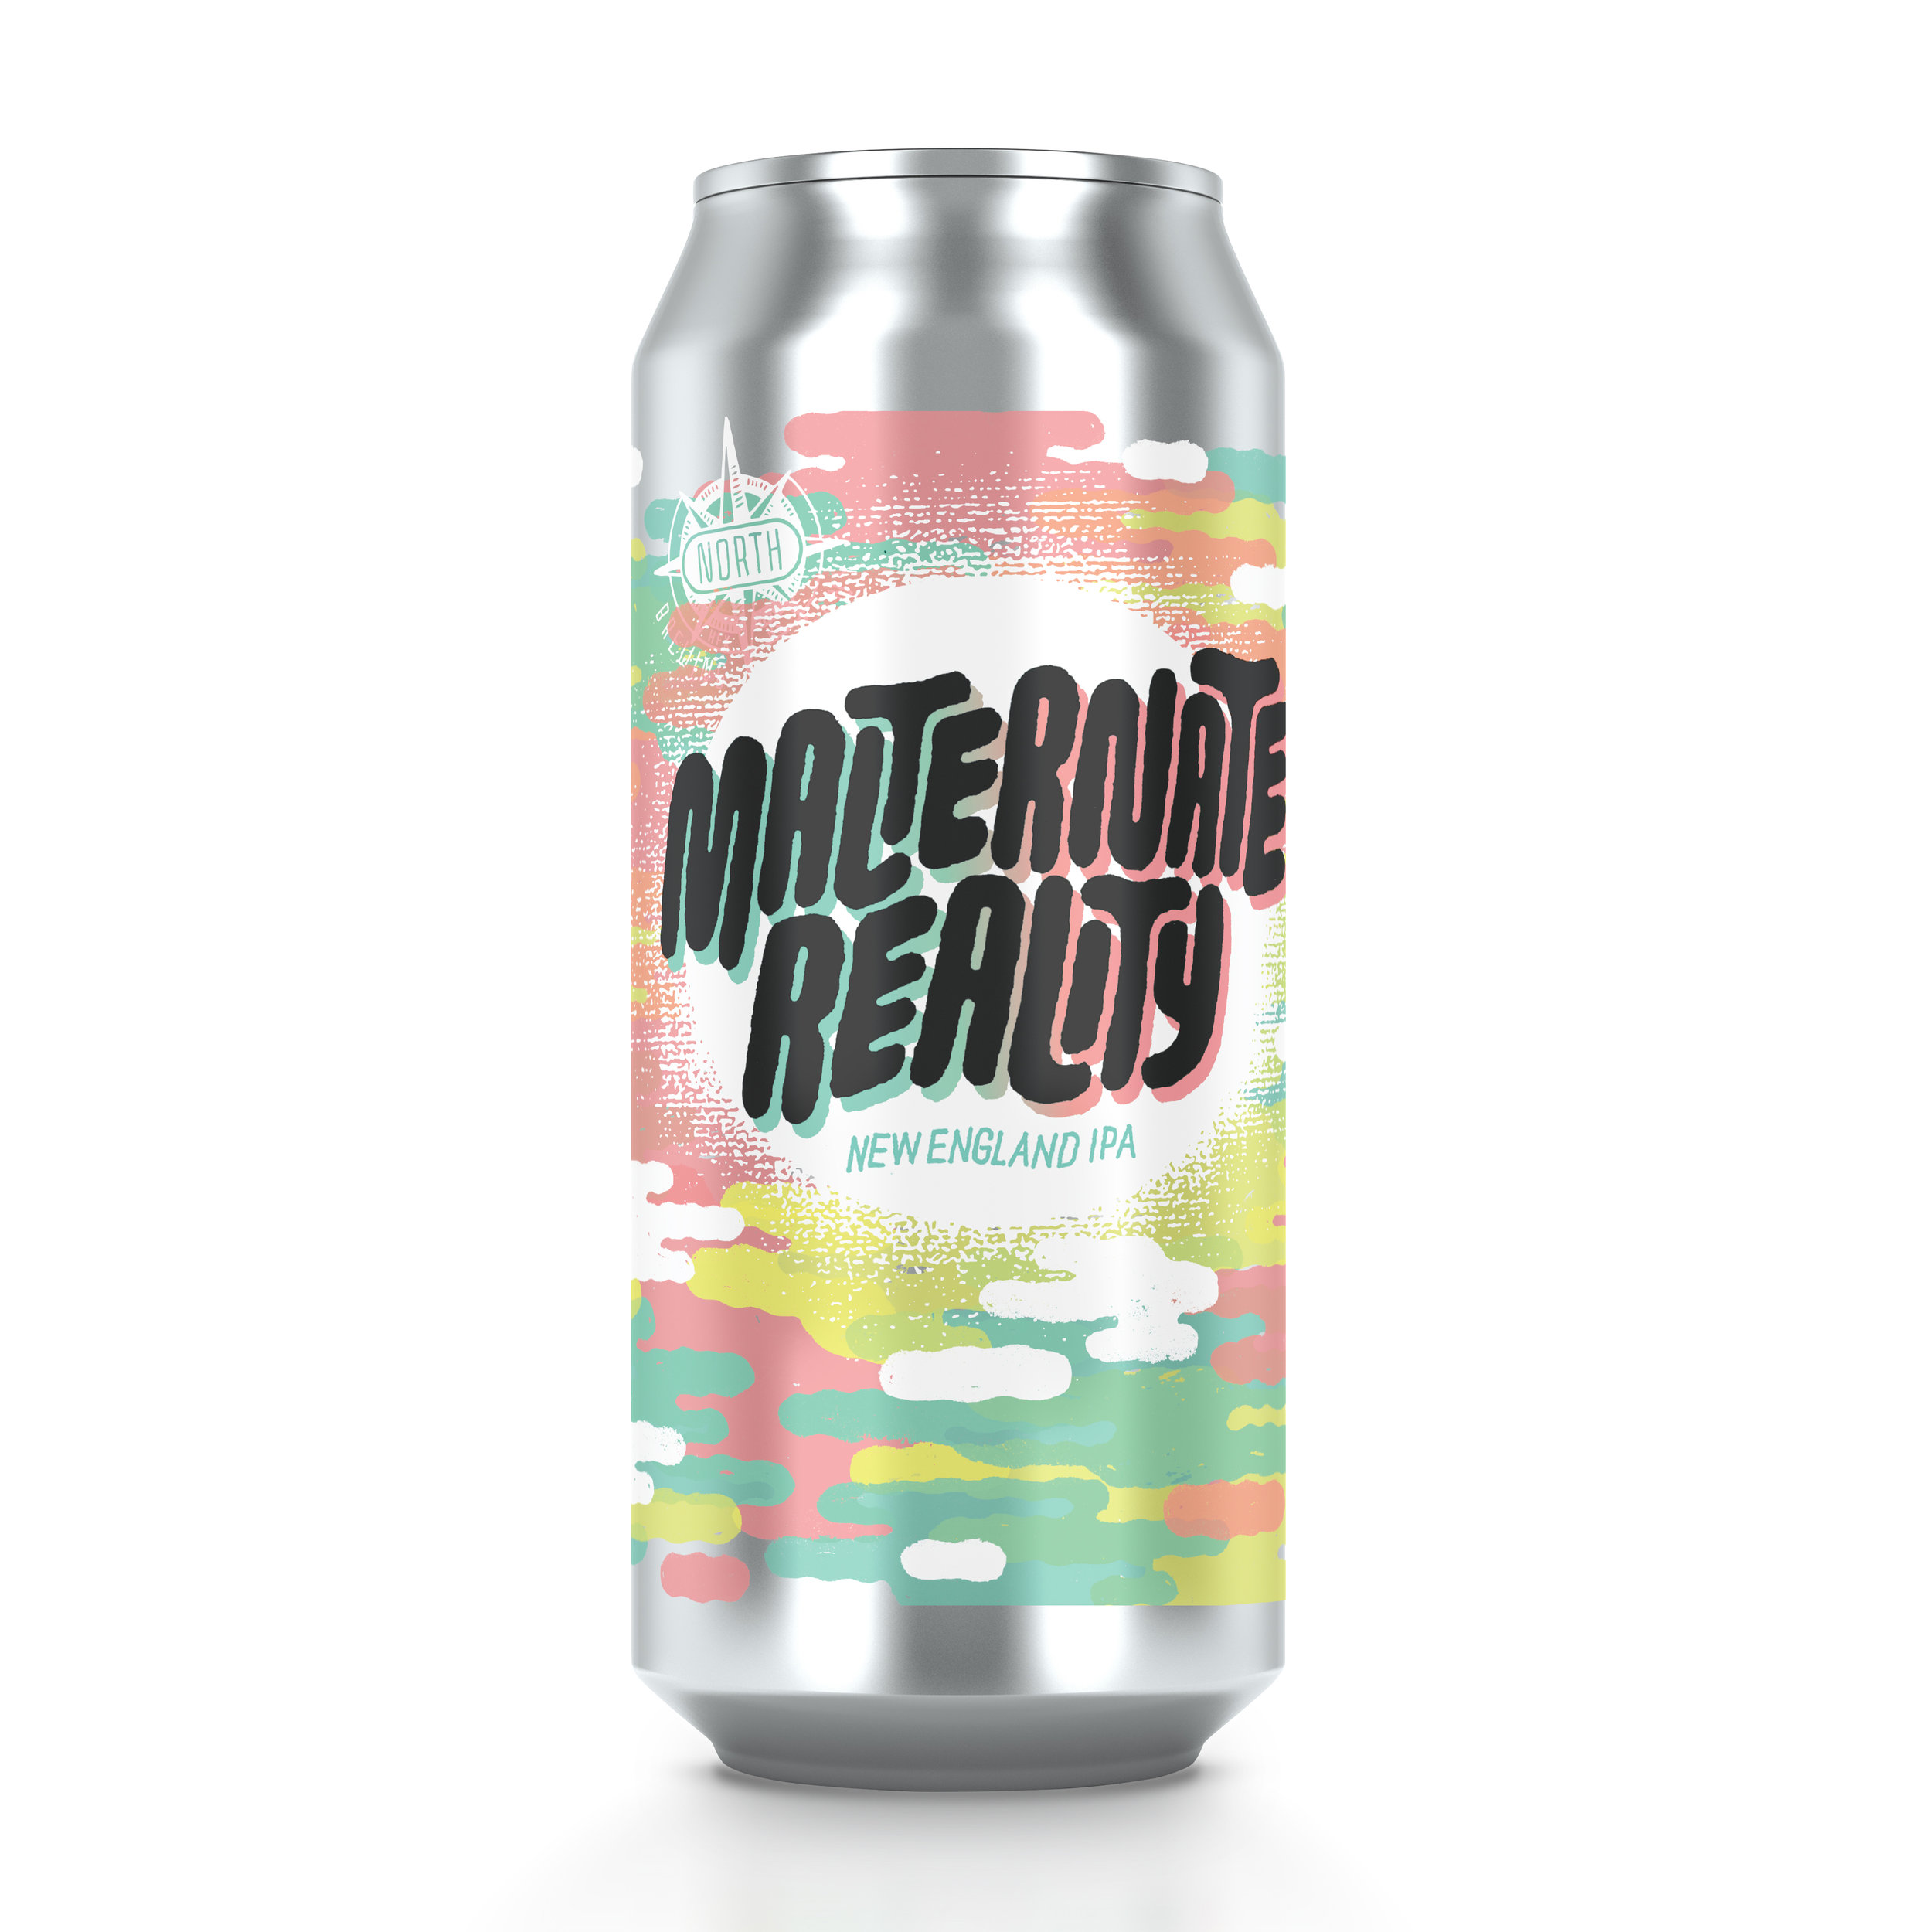 Malternate Reality NE IPA   ABV 6.3%    Juicy New England Style IPA    Hops: Mosaic    Yeast: Vermont Ale Yeast (Escarpment Labs)